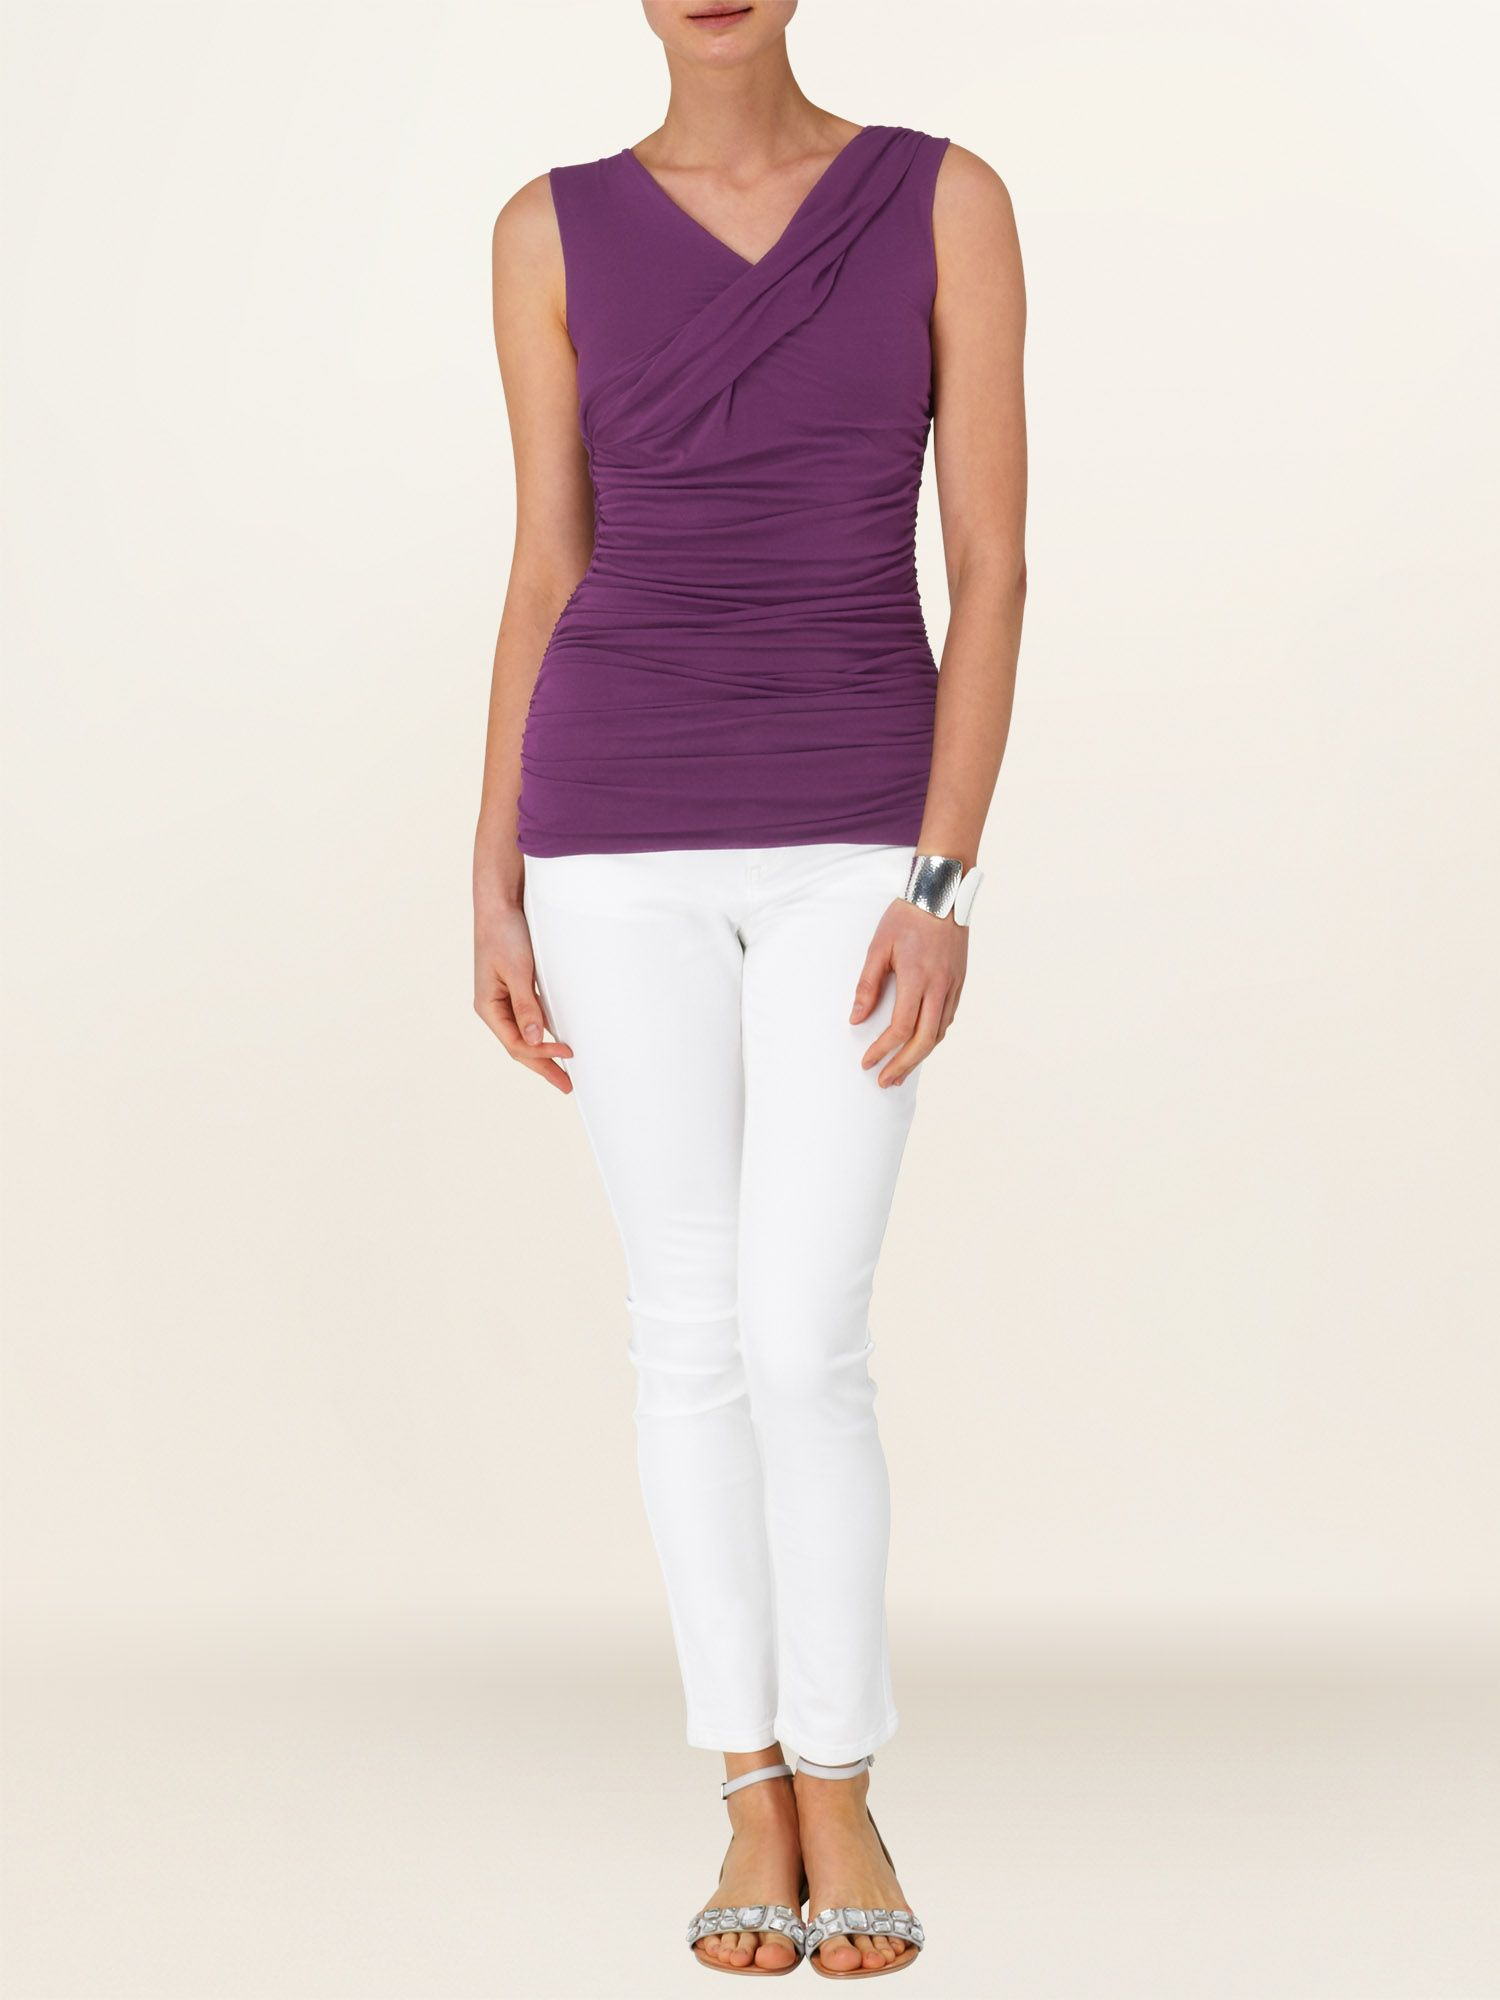 Tillie sleeveless top